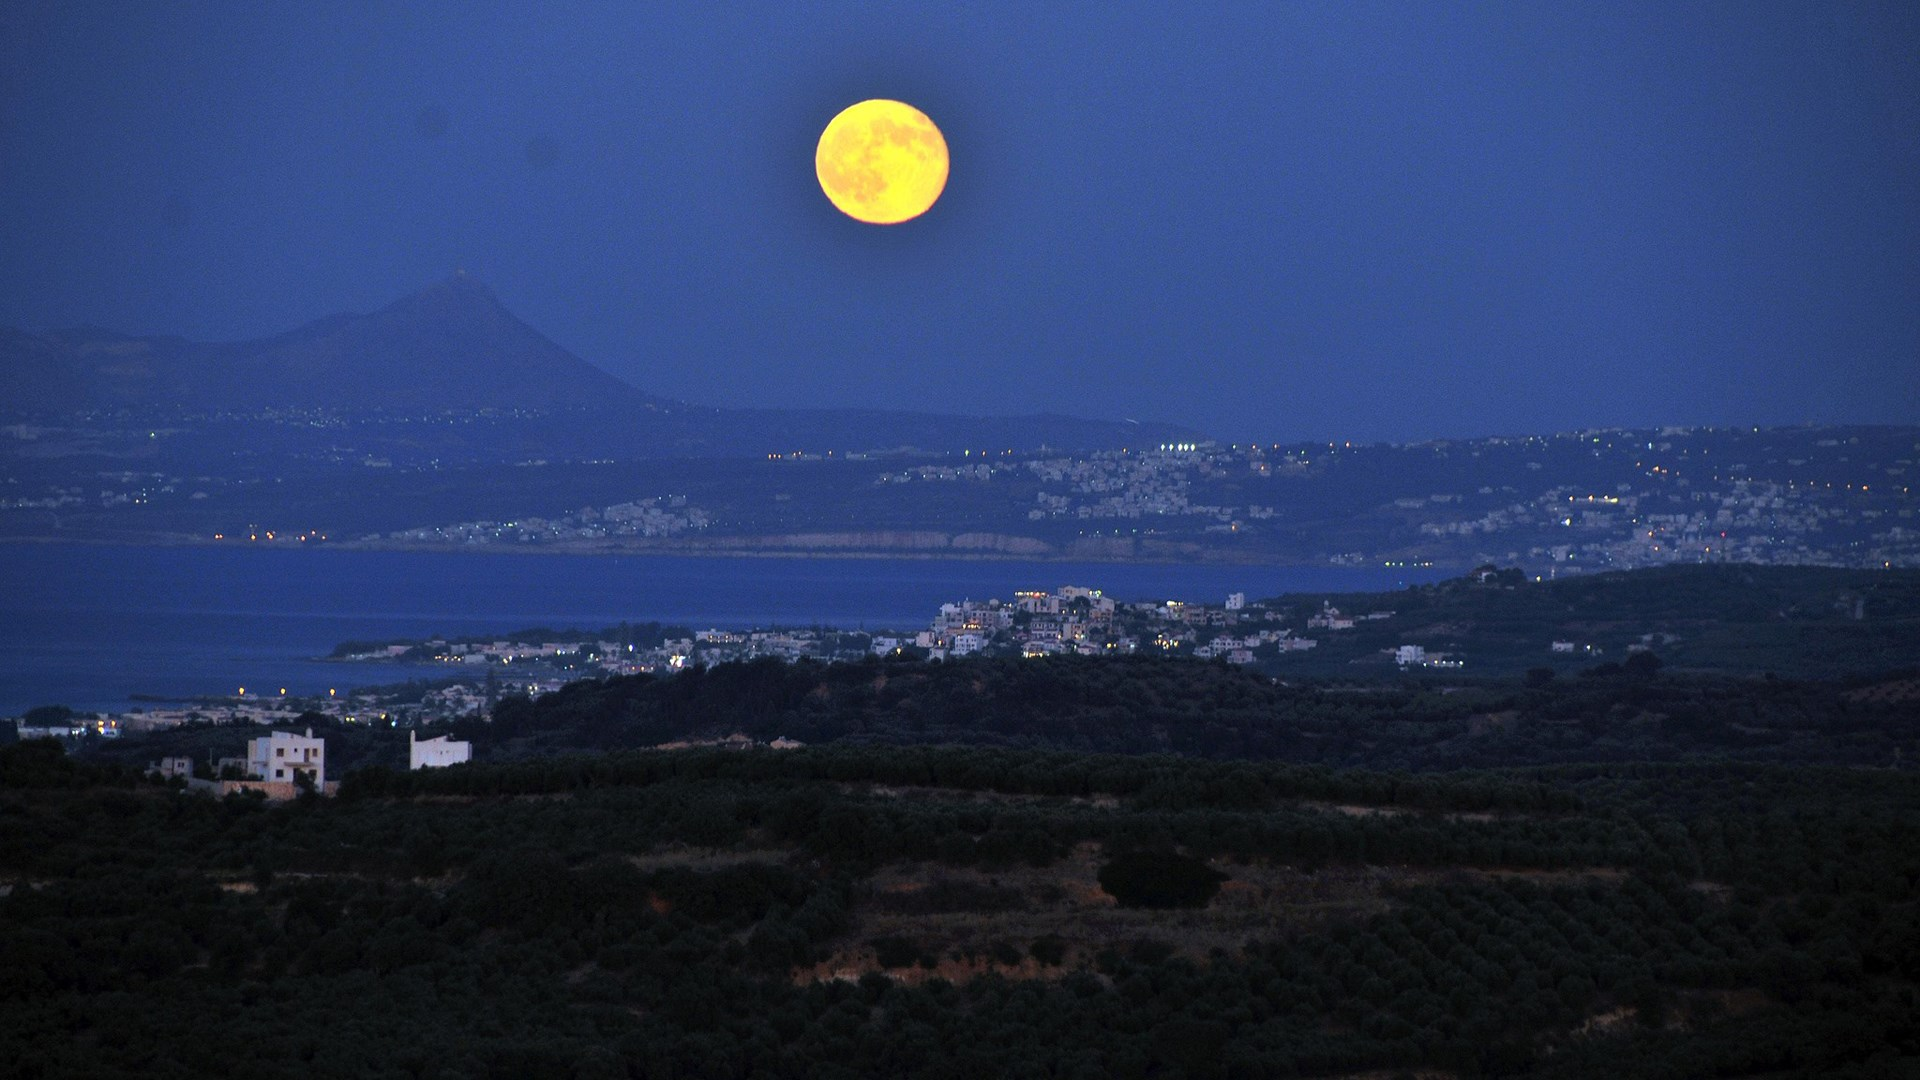 The August 2014 Full Moon, Crete, Greece | 10 Aug 2014  | Alargo